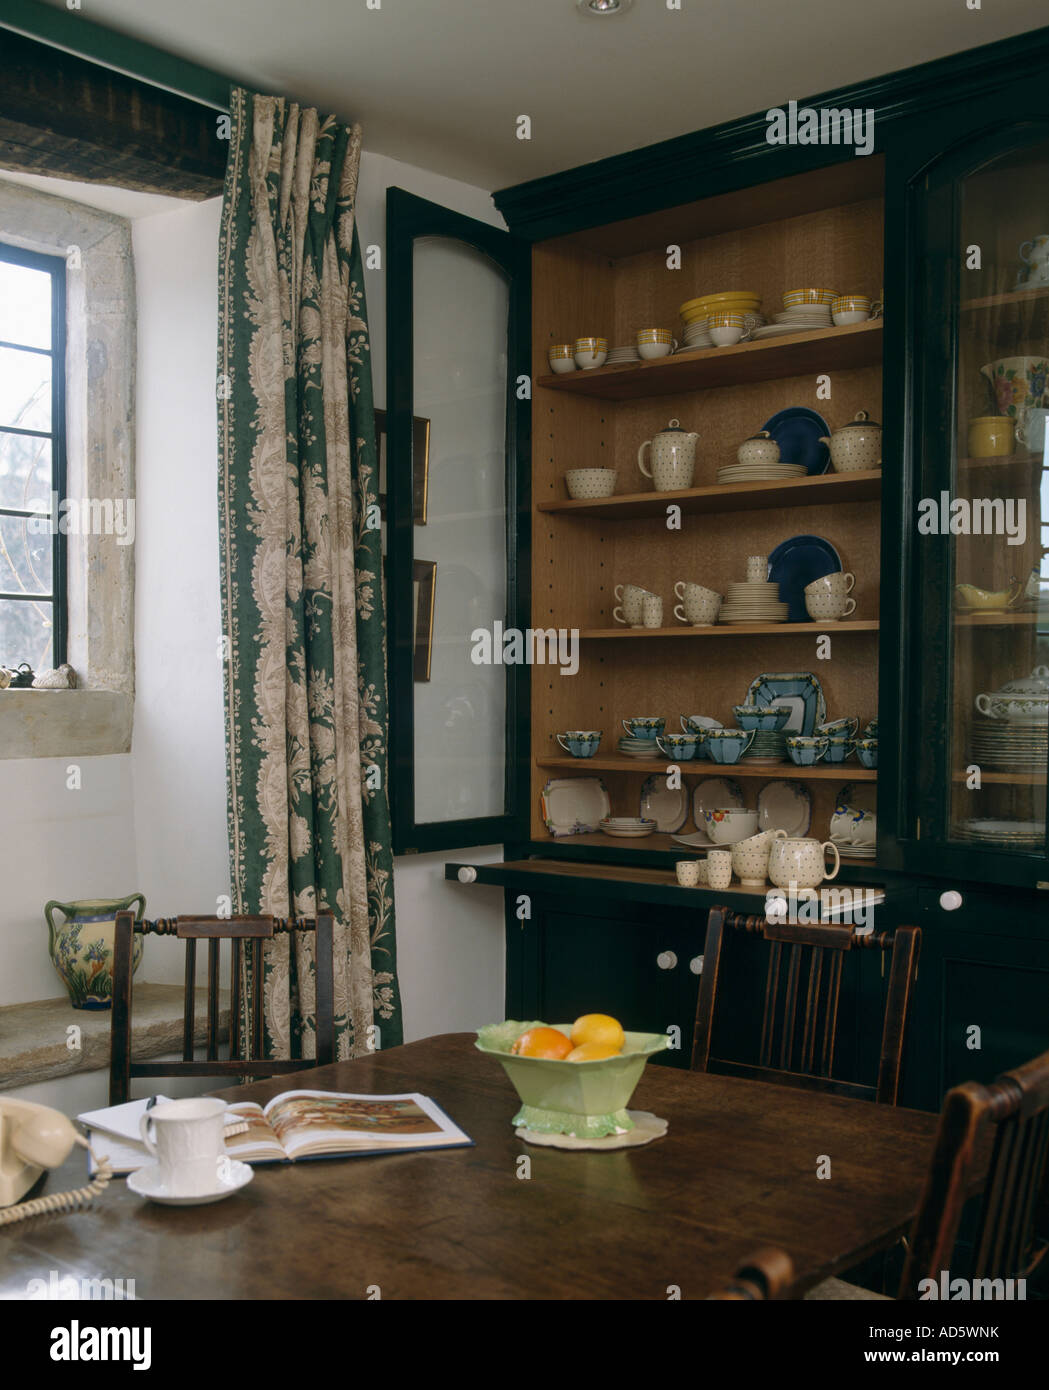 Large Antique Dresser With Crockery On Shelves In Country Diningroom Cup And Book Dining Table